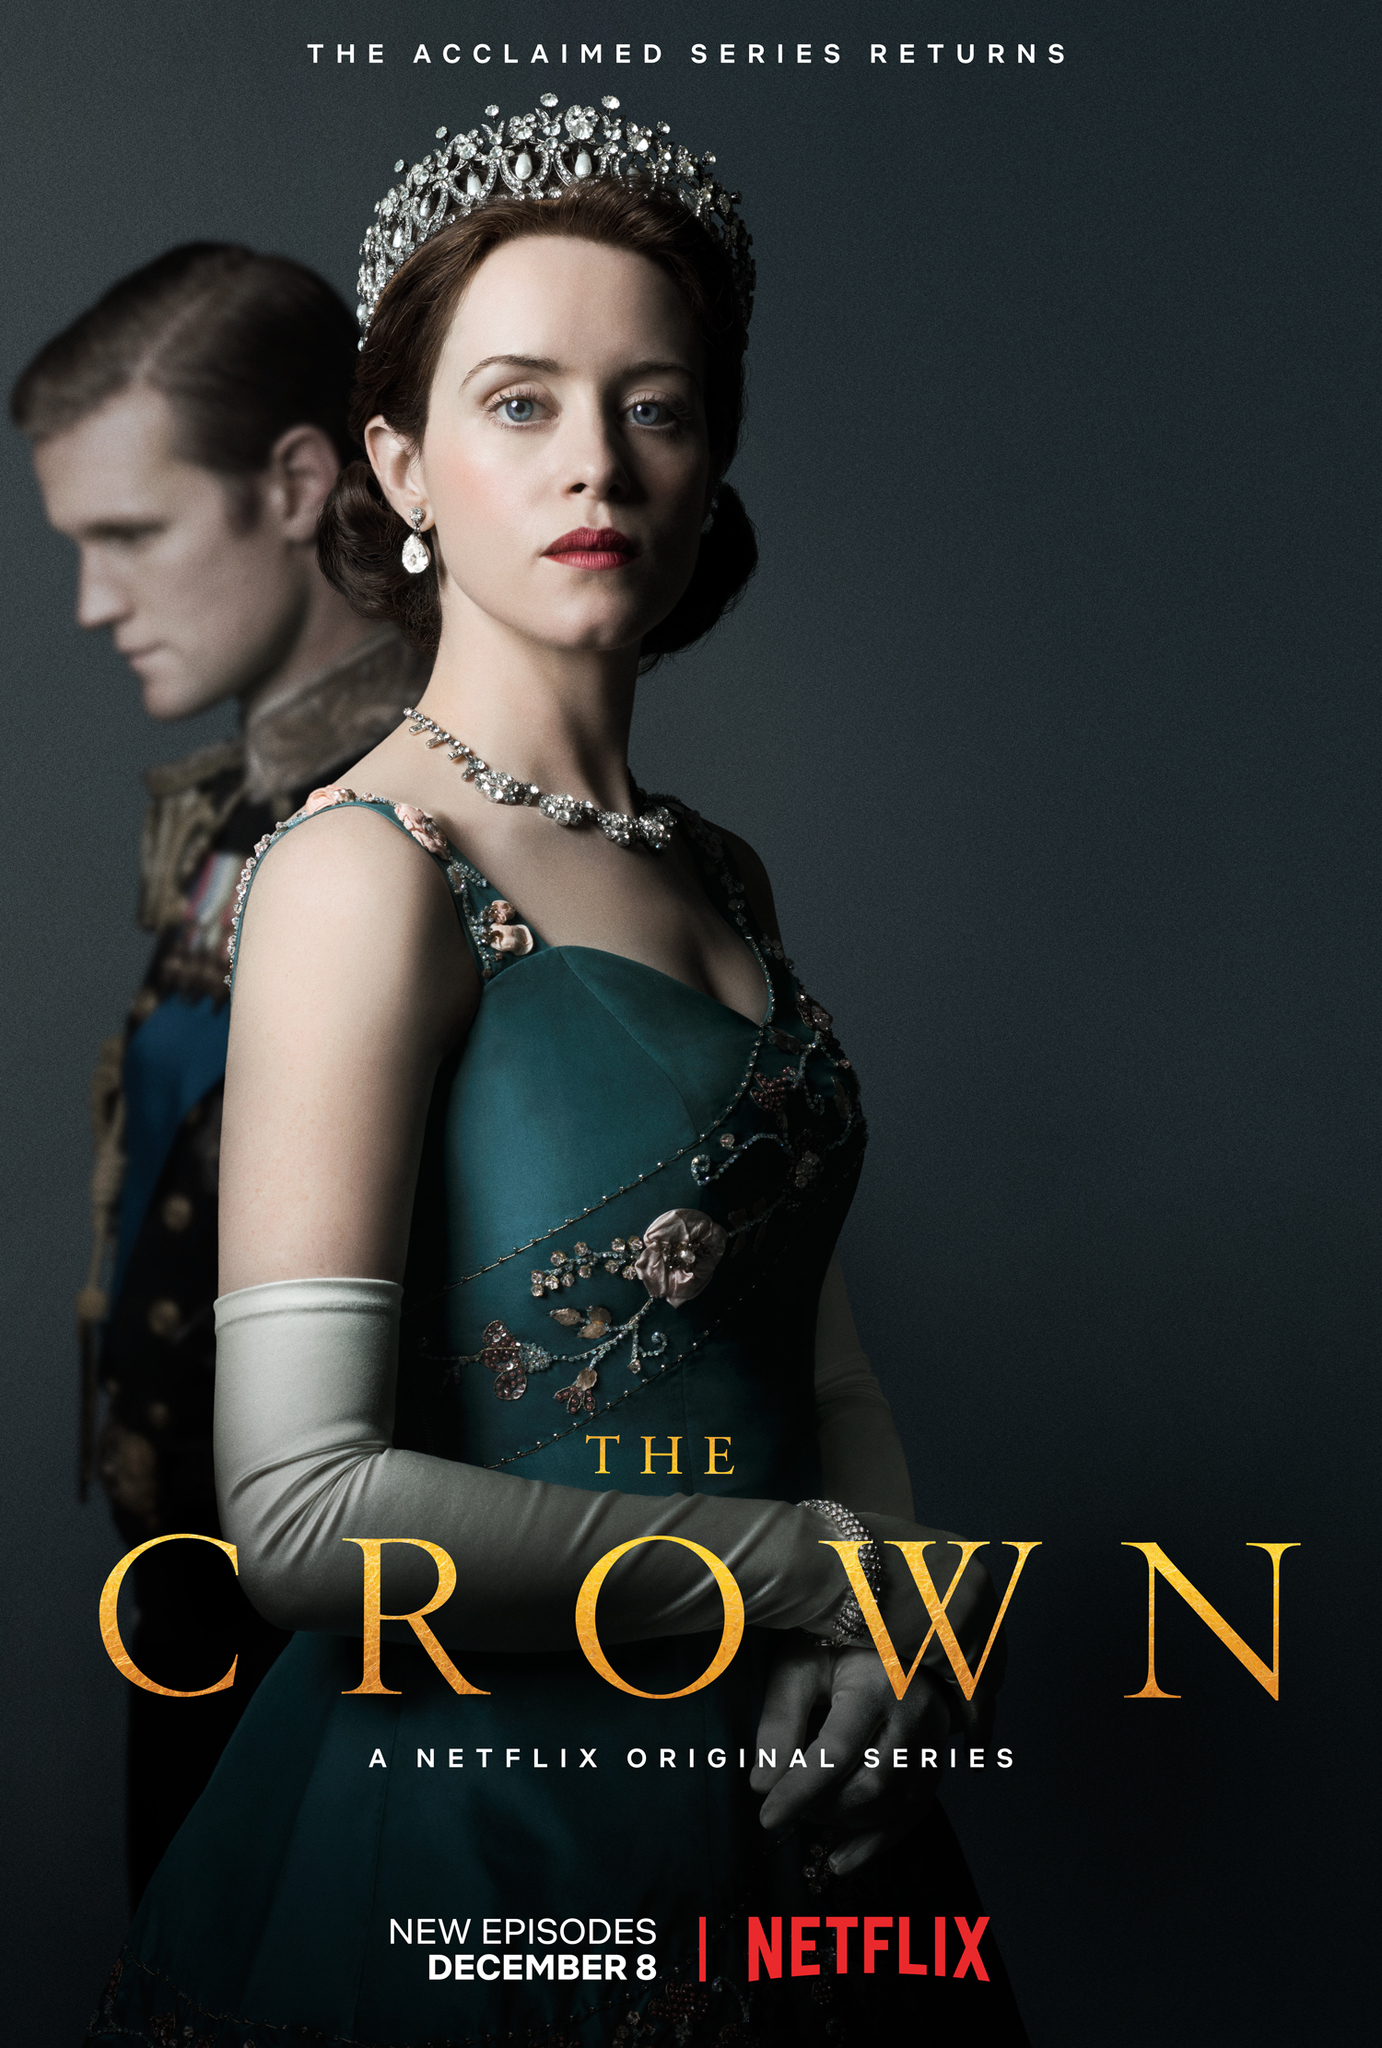 The Crown Season 2 COMPLETE WEBRip 480p, 720p & 1080p